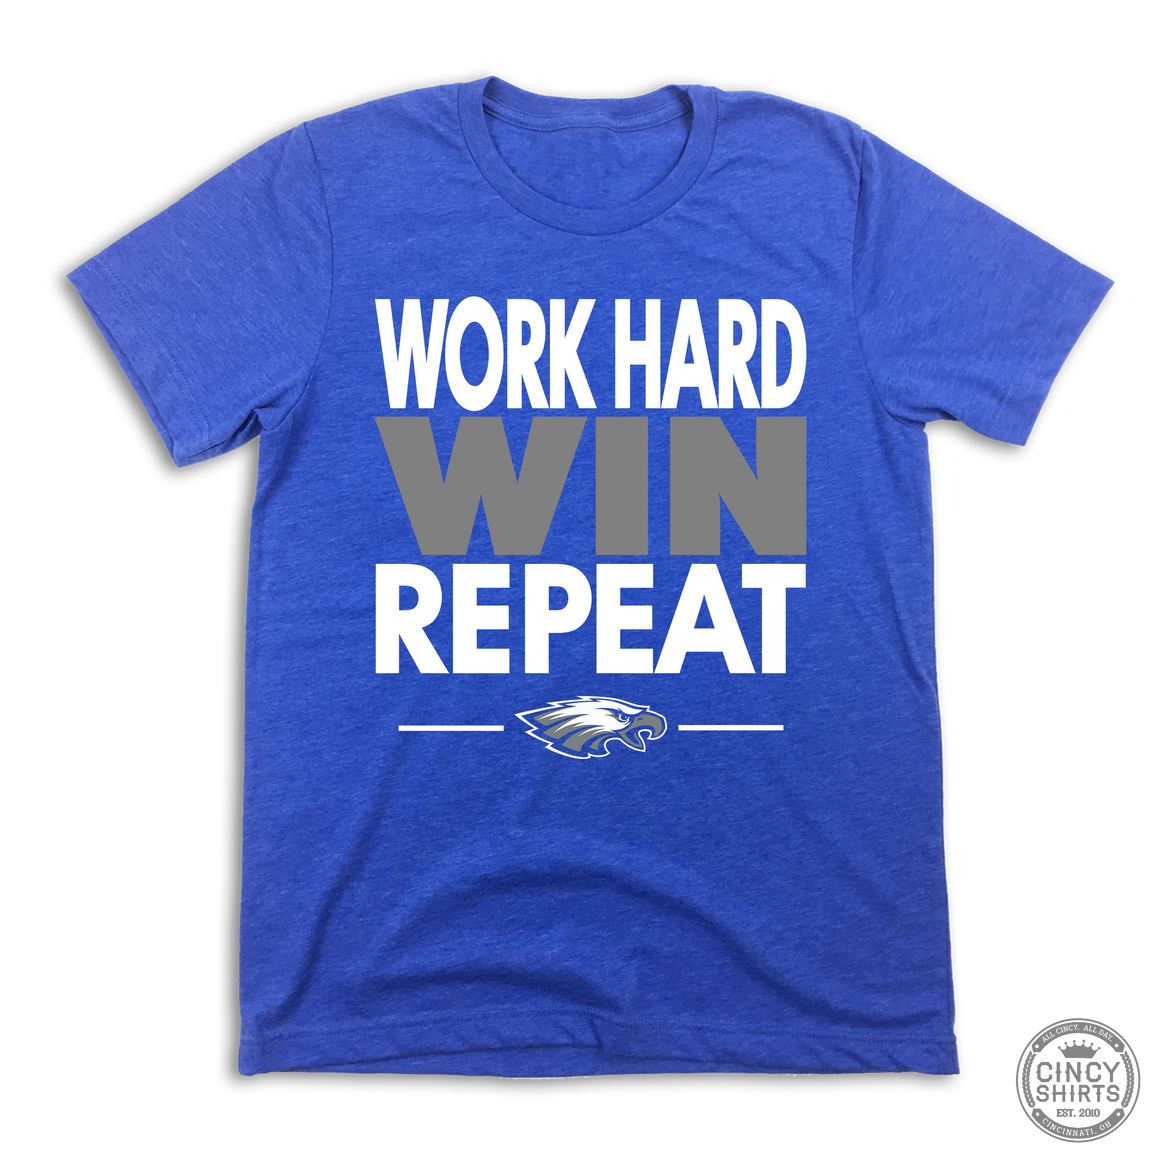 Work Hard, Win, Repeat - Cincy Shirts